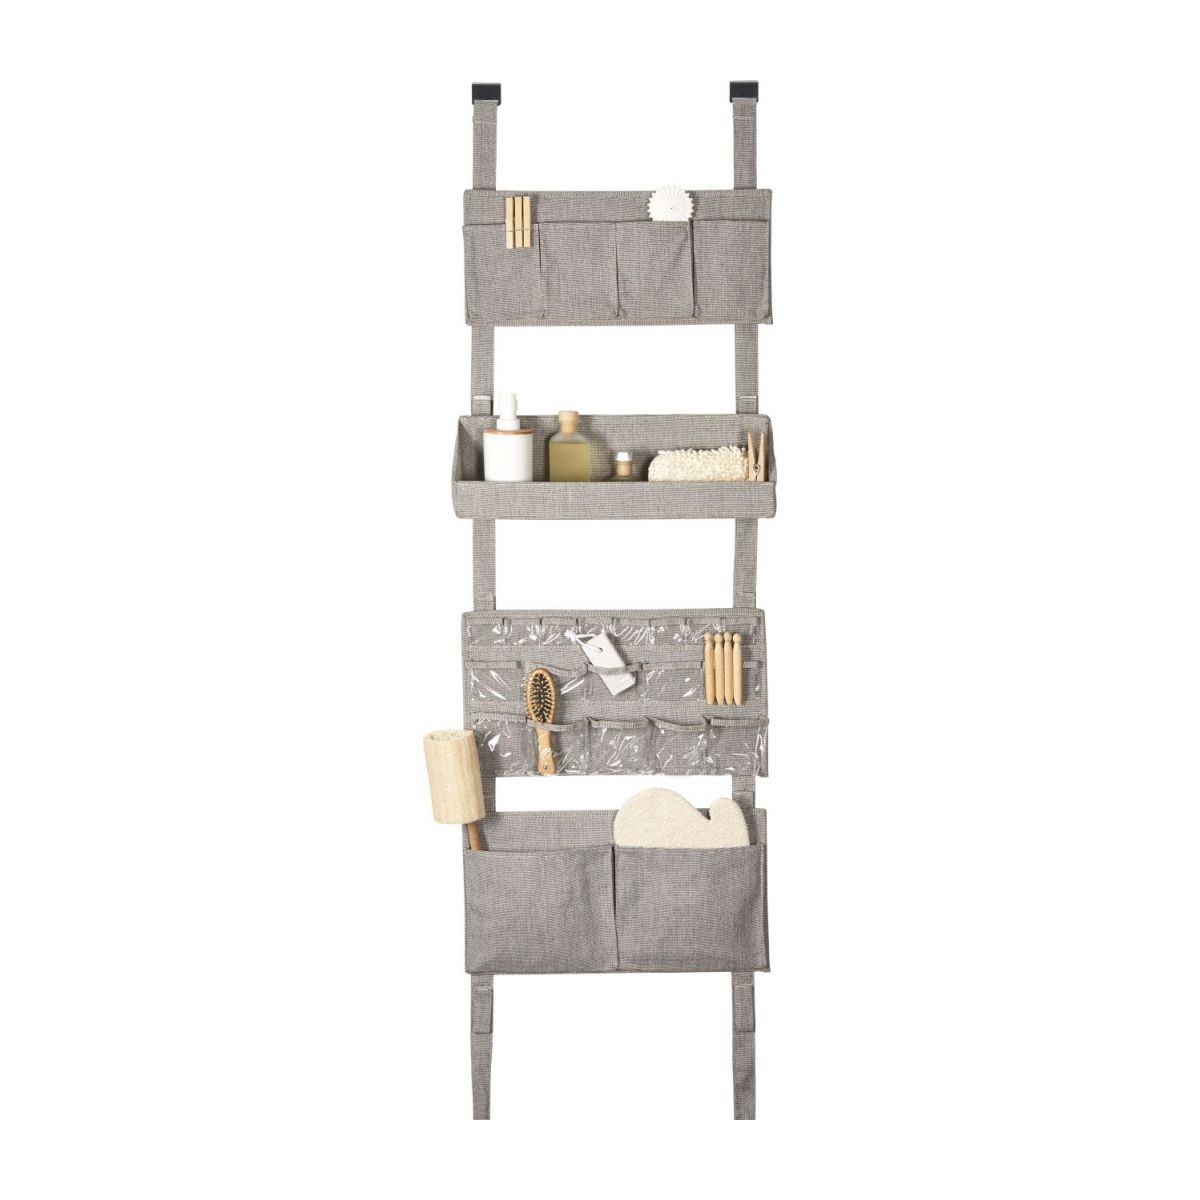 Wall modular storage with pockets, grey fabric and bamboo n°4